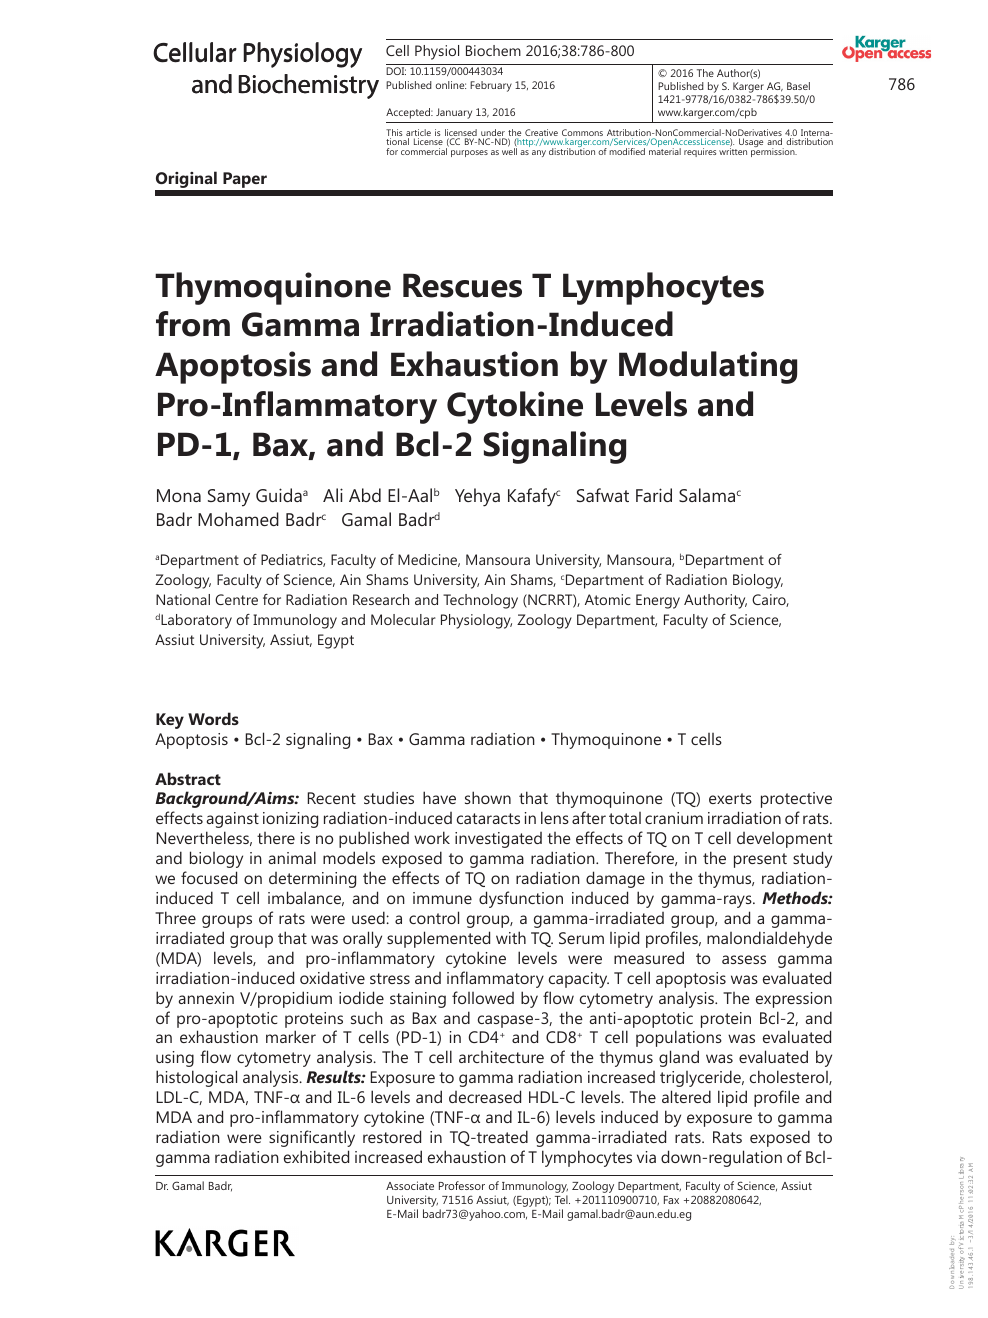 Thymoquinone Rescues T Lymphocytes from Gamma Irradiation